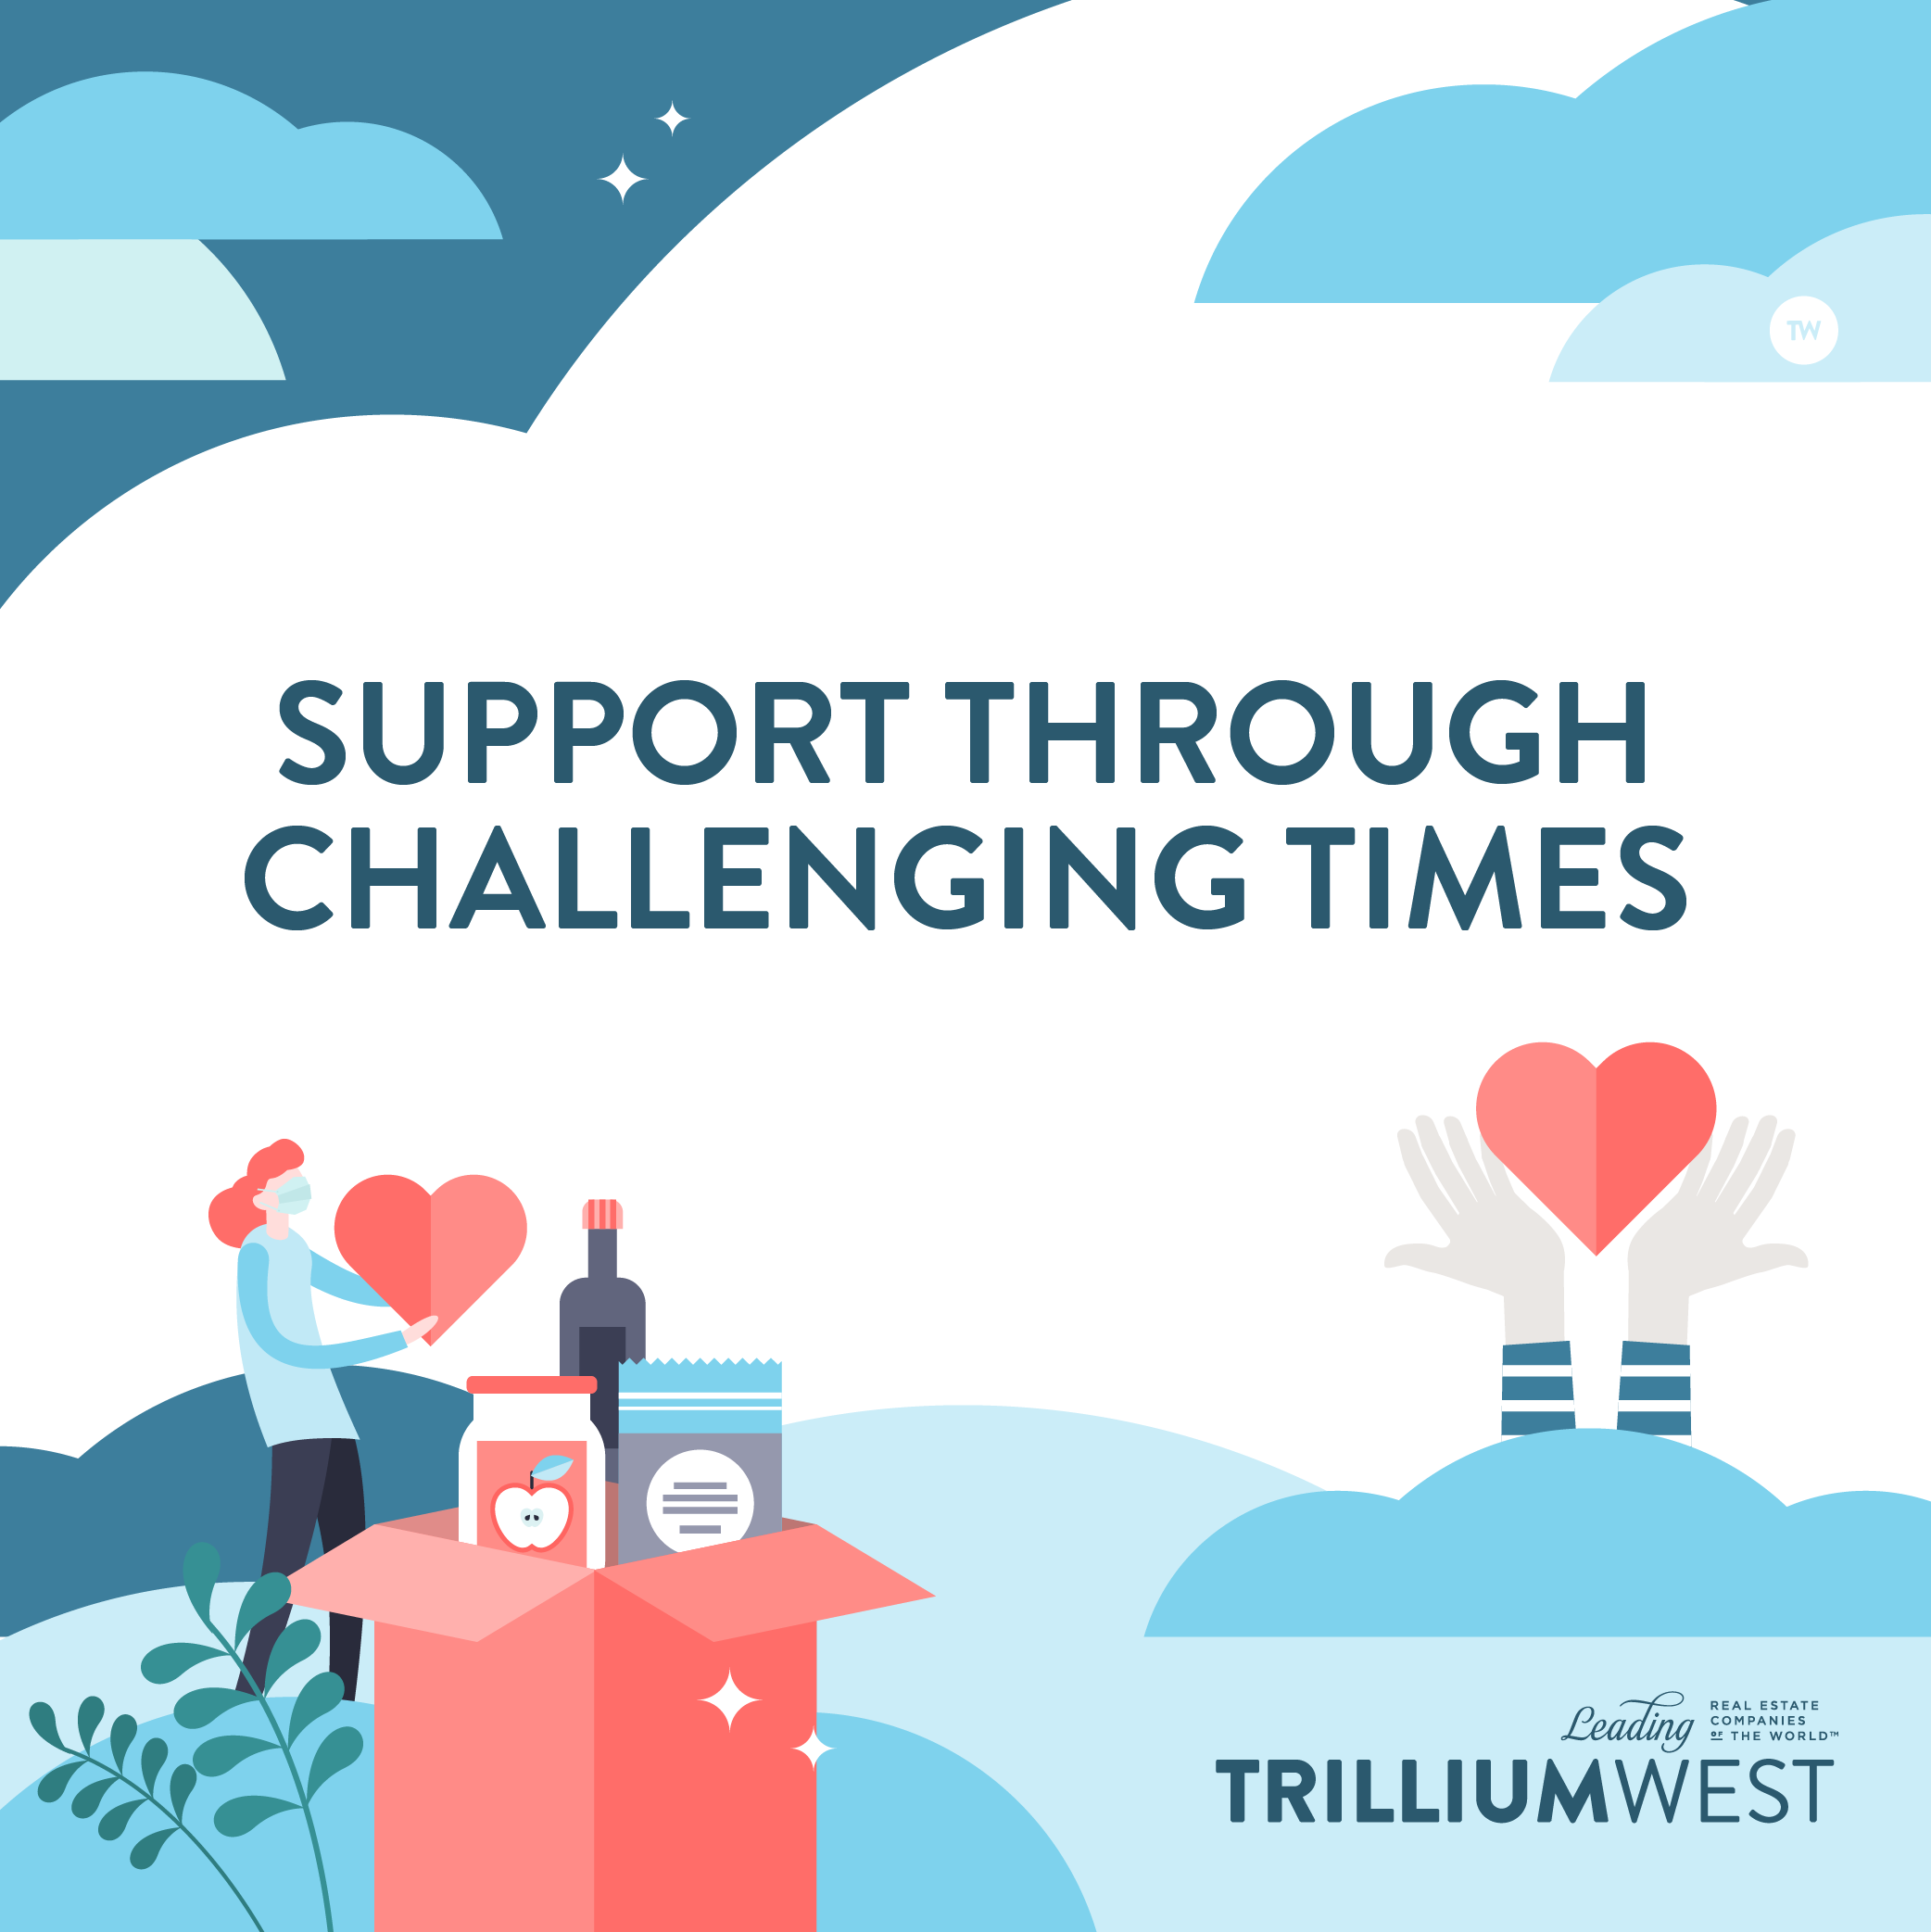 TWSupport Through Challenging Times